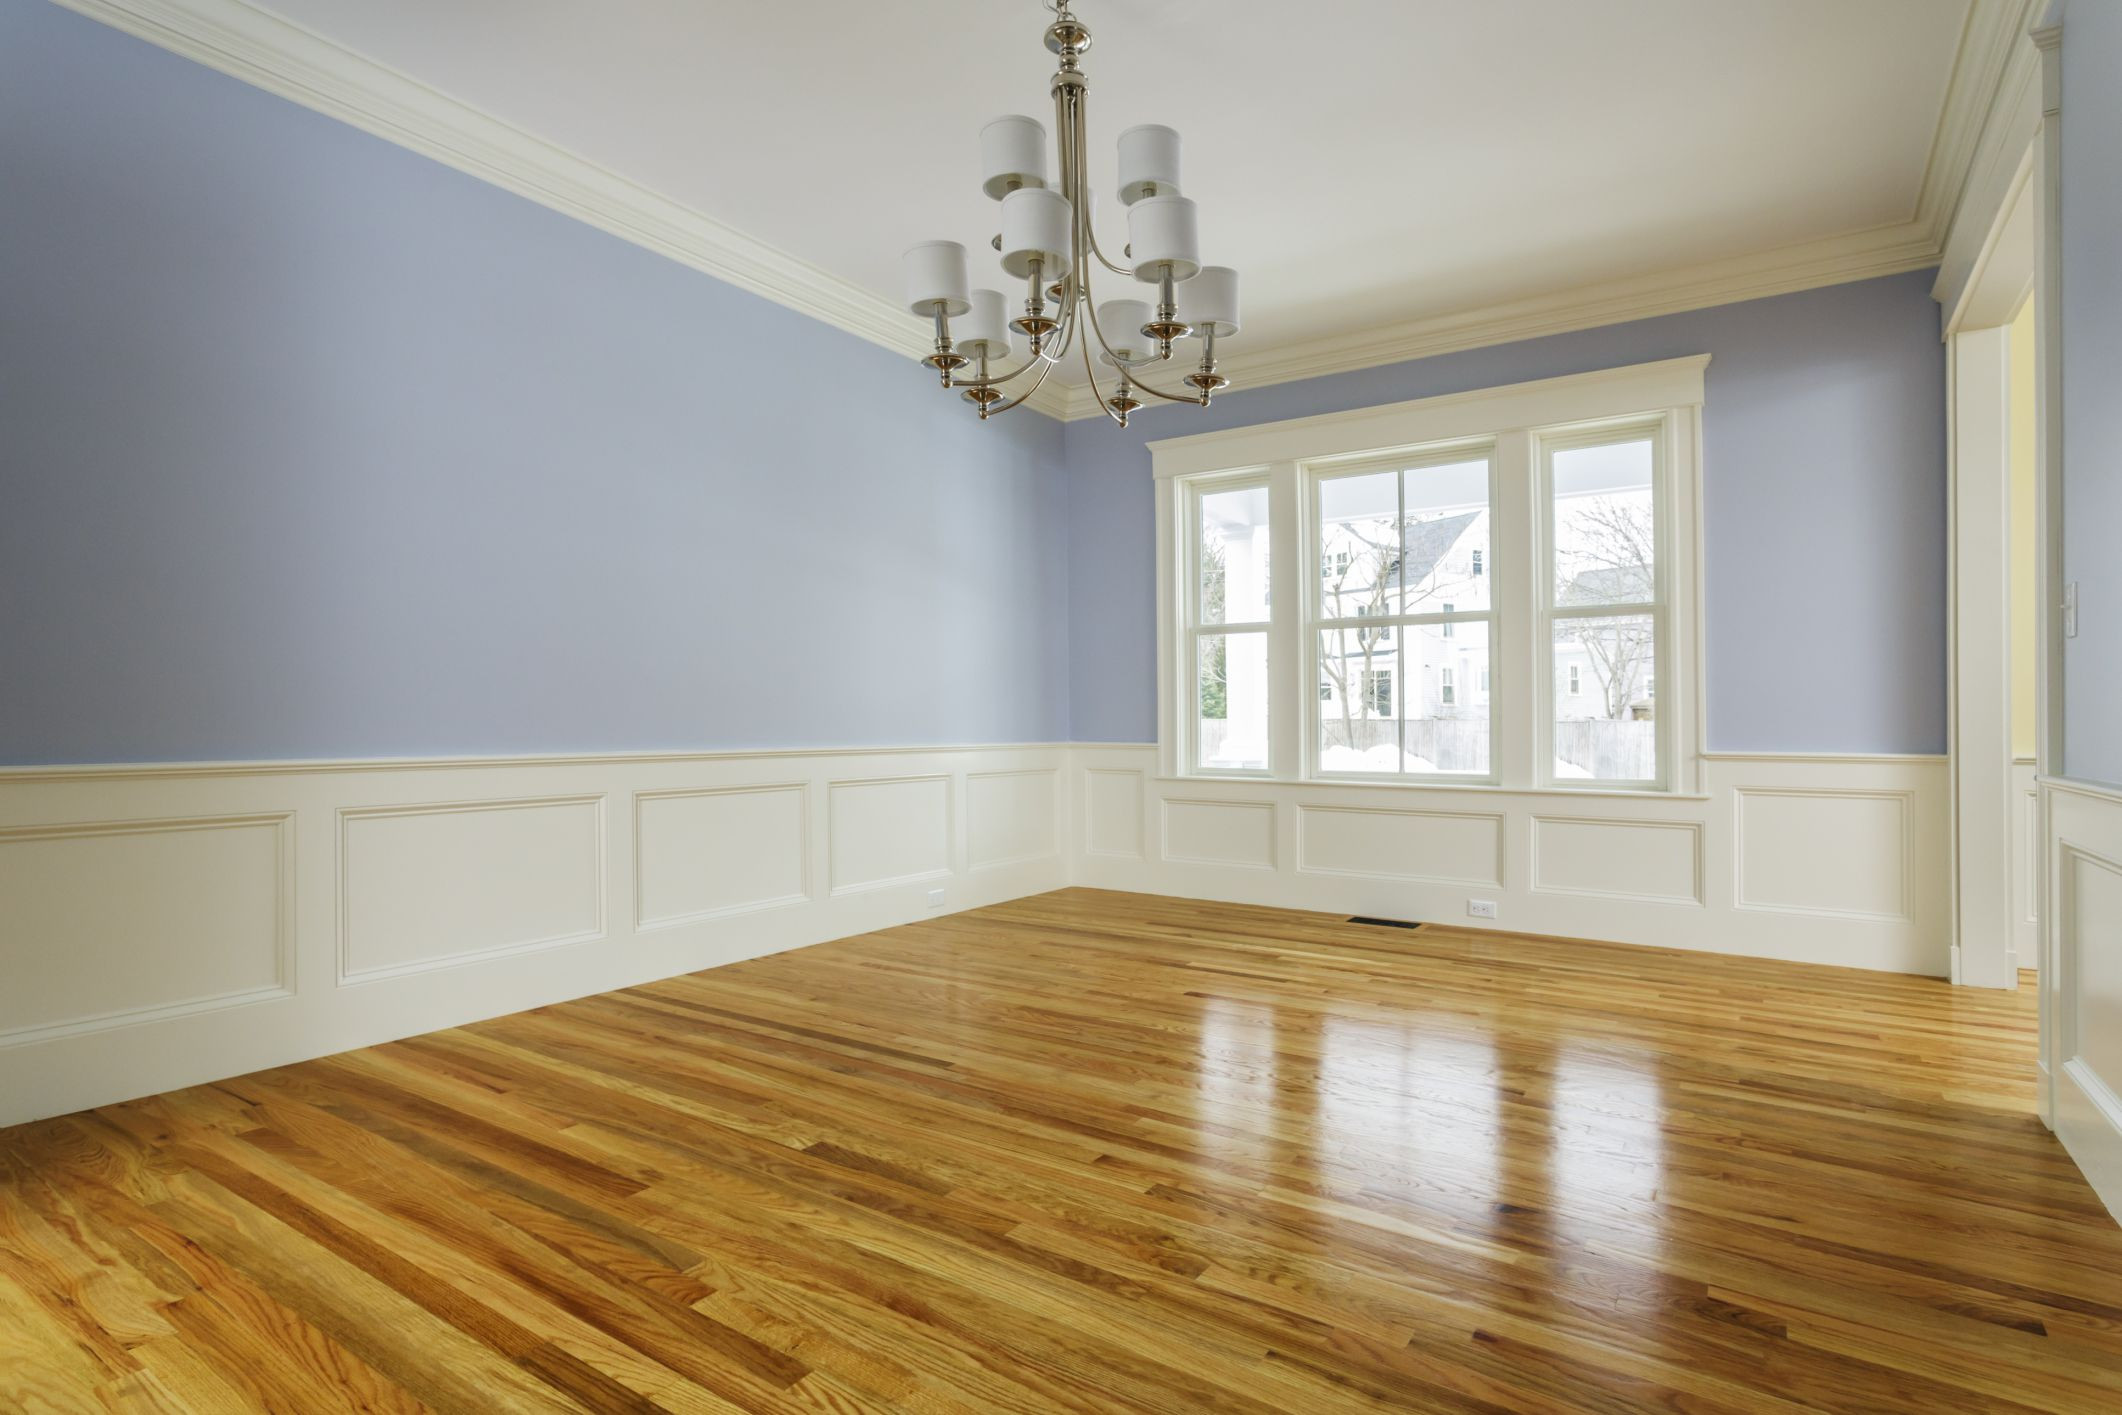 Hardwood Floor Pricing Guide Of the Cost to Refinish Hardwood Floors In 168686572 Highres 56a2fd773df78cf7727b6cb3